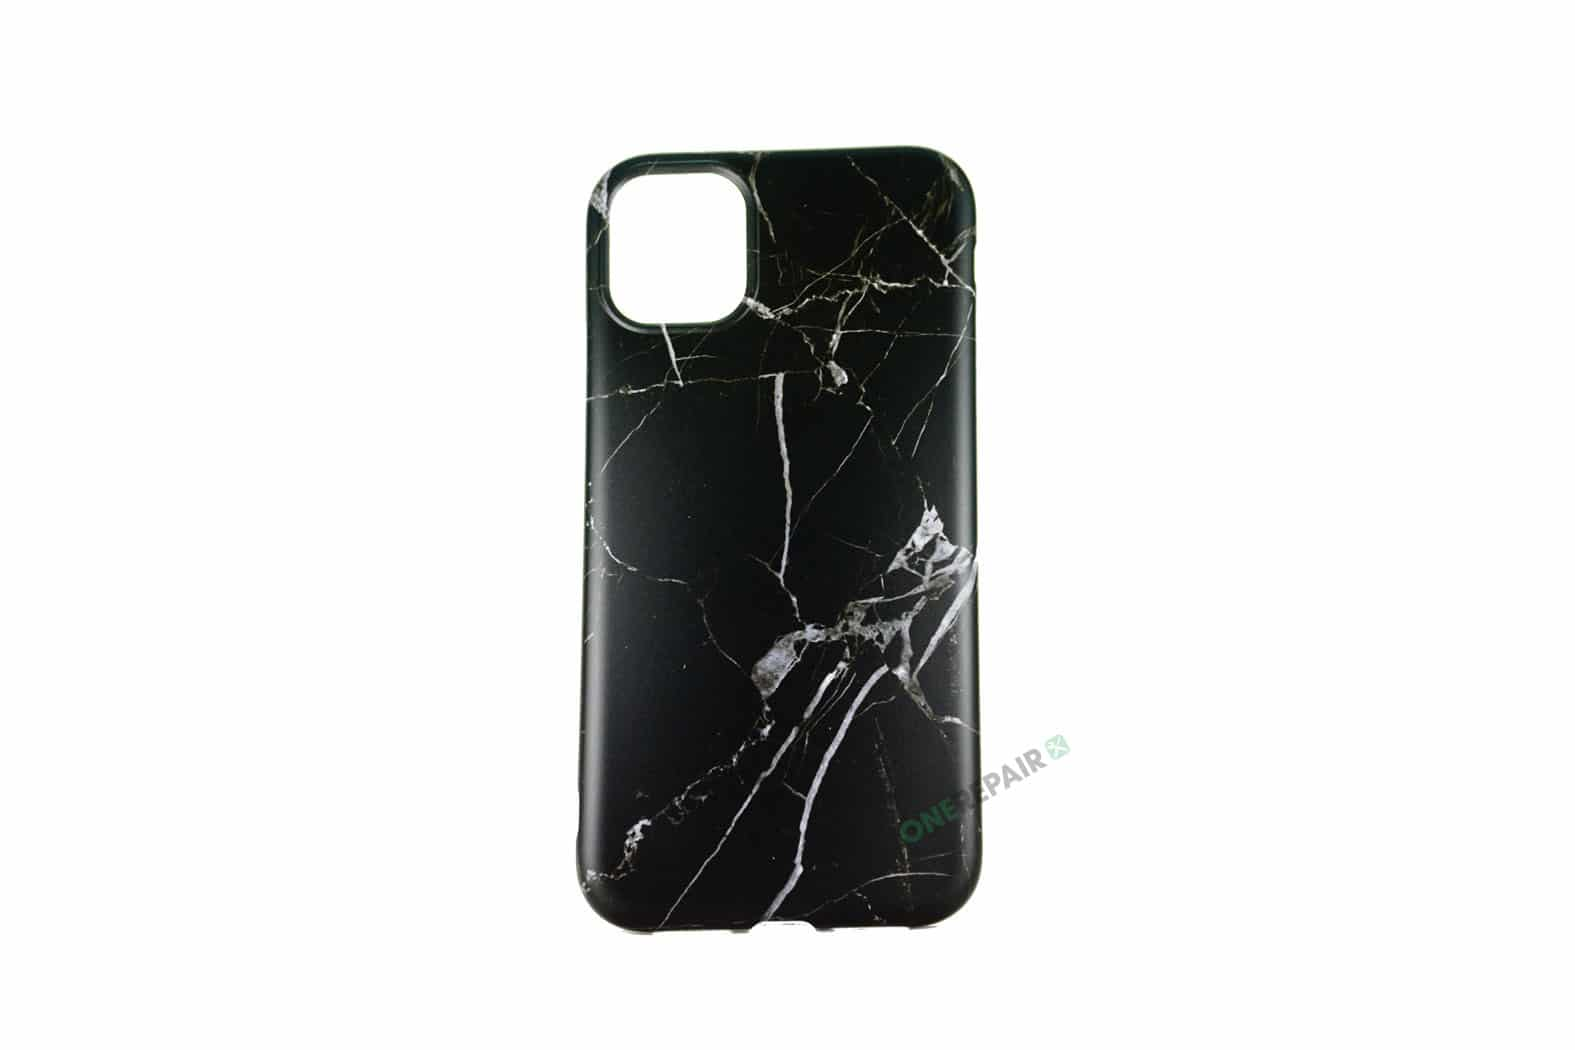 353753-001_iPhone_11_Marmor_Classic_Sort_OneRepair_00001